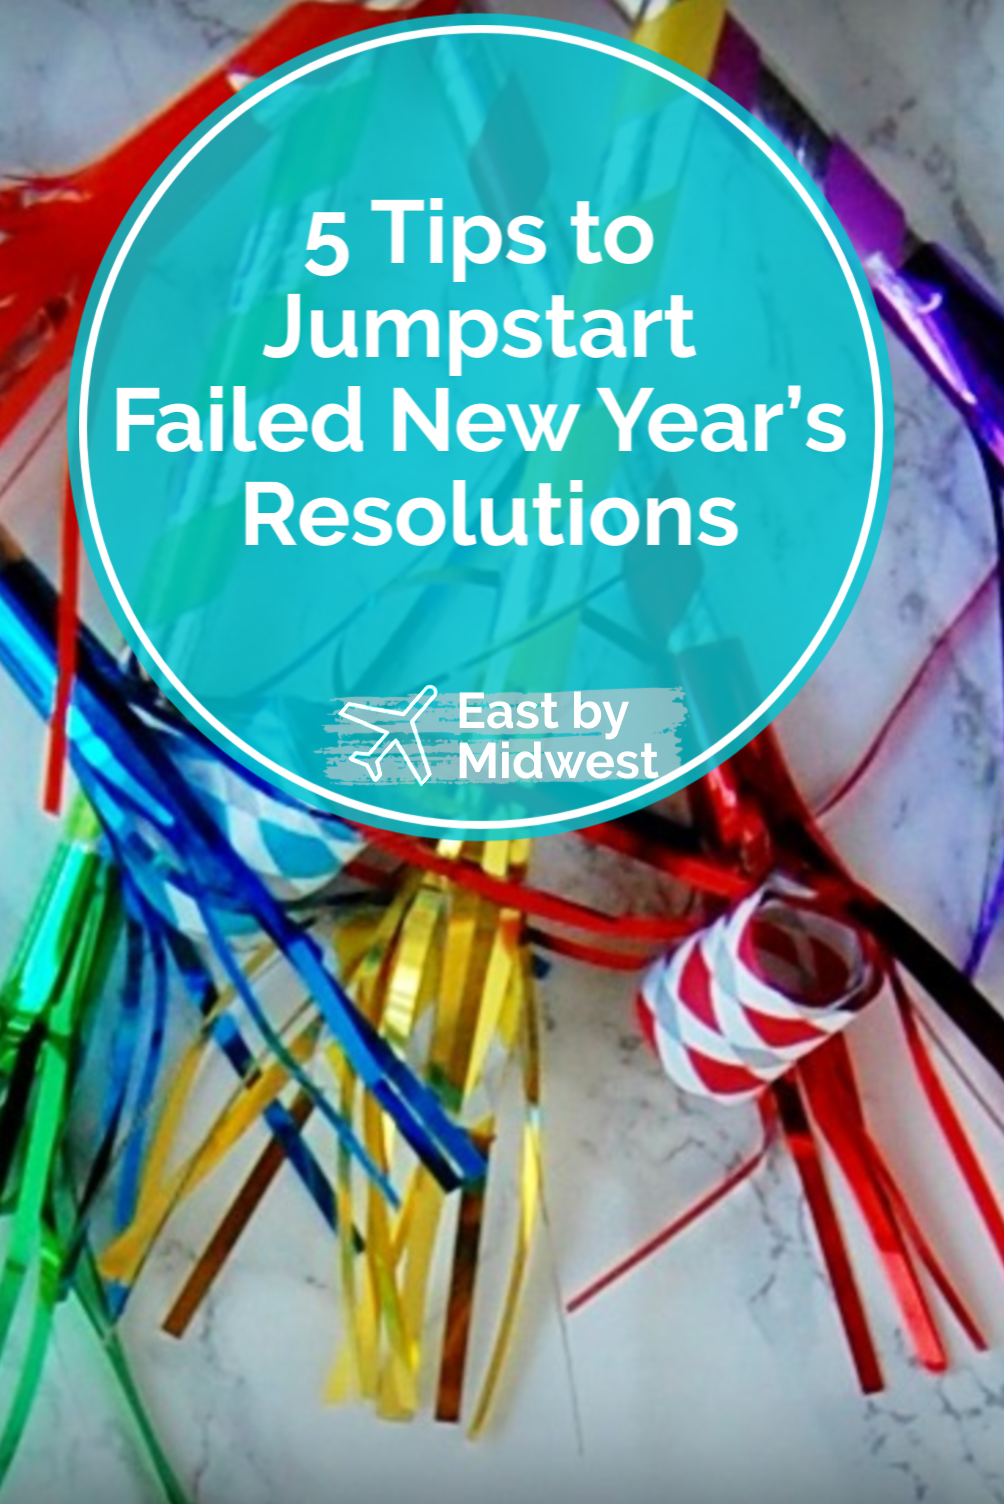 5 Tips to Jumpstart Failed New Year's Resolutions in 2020